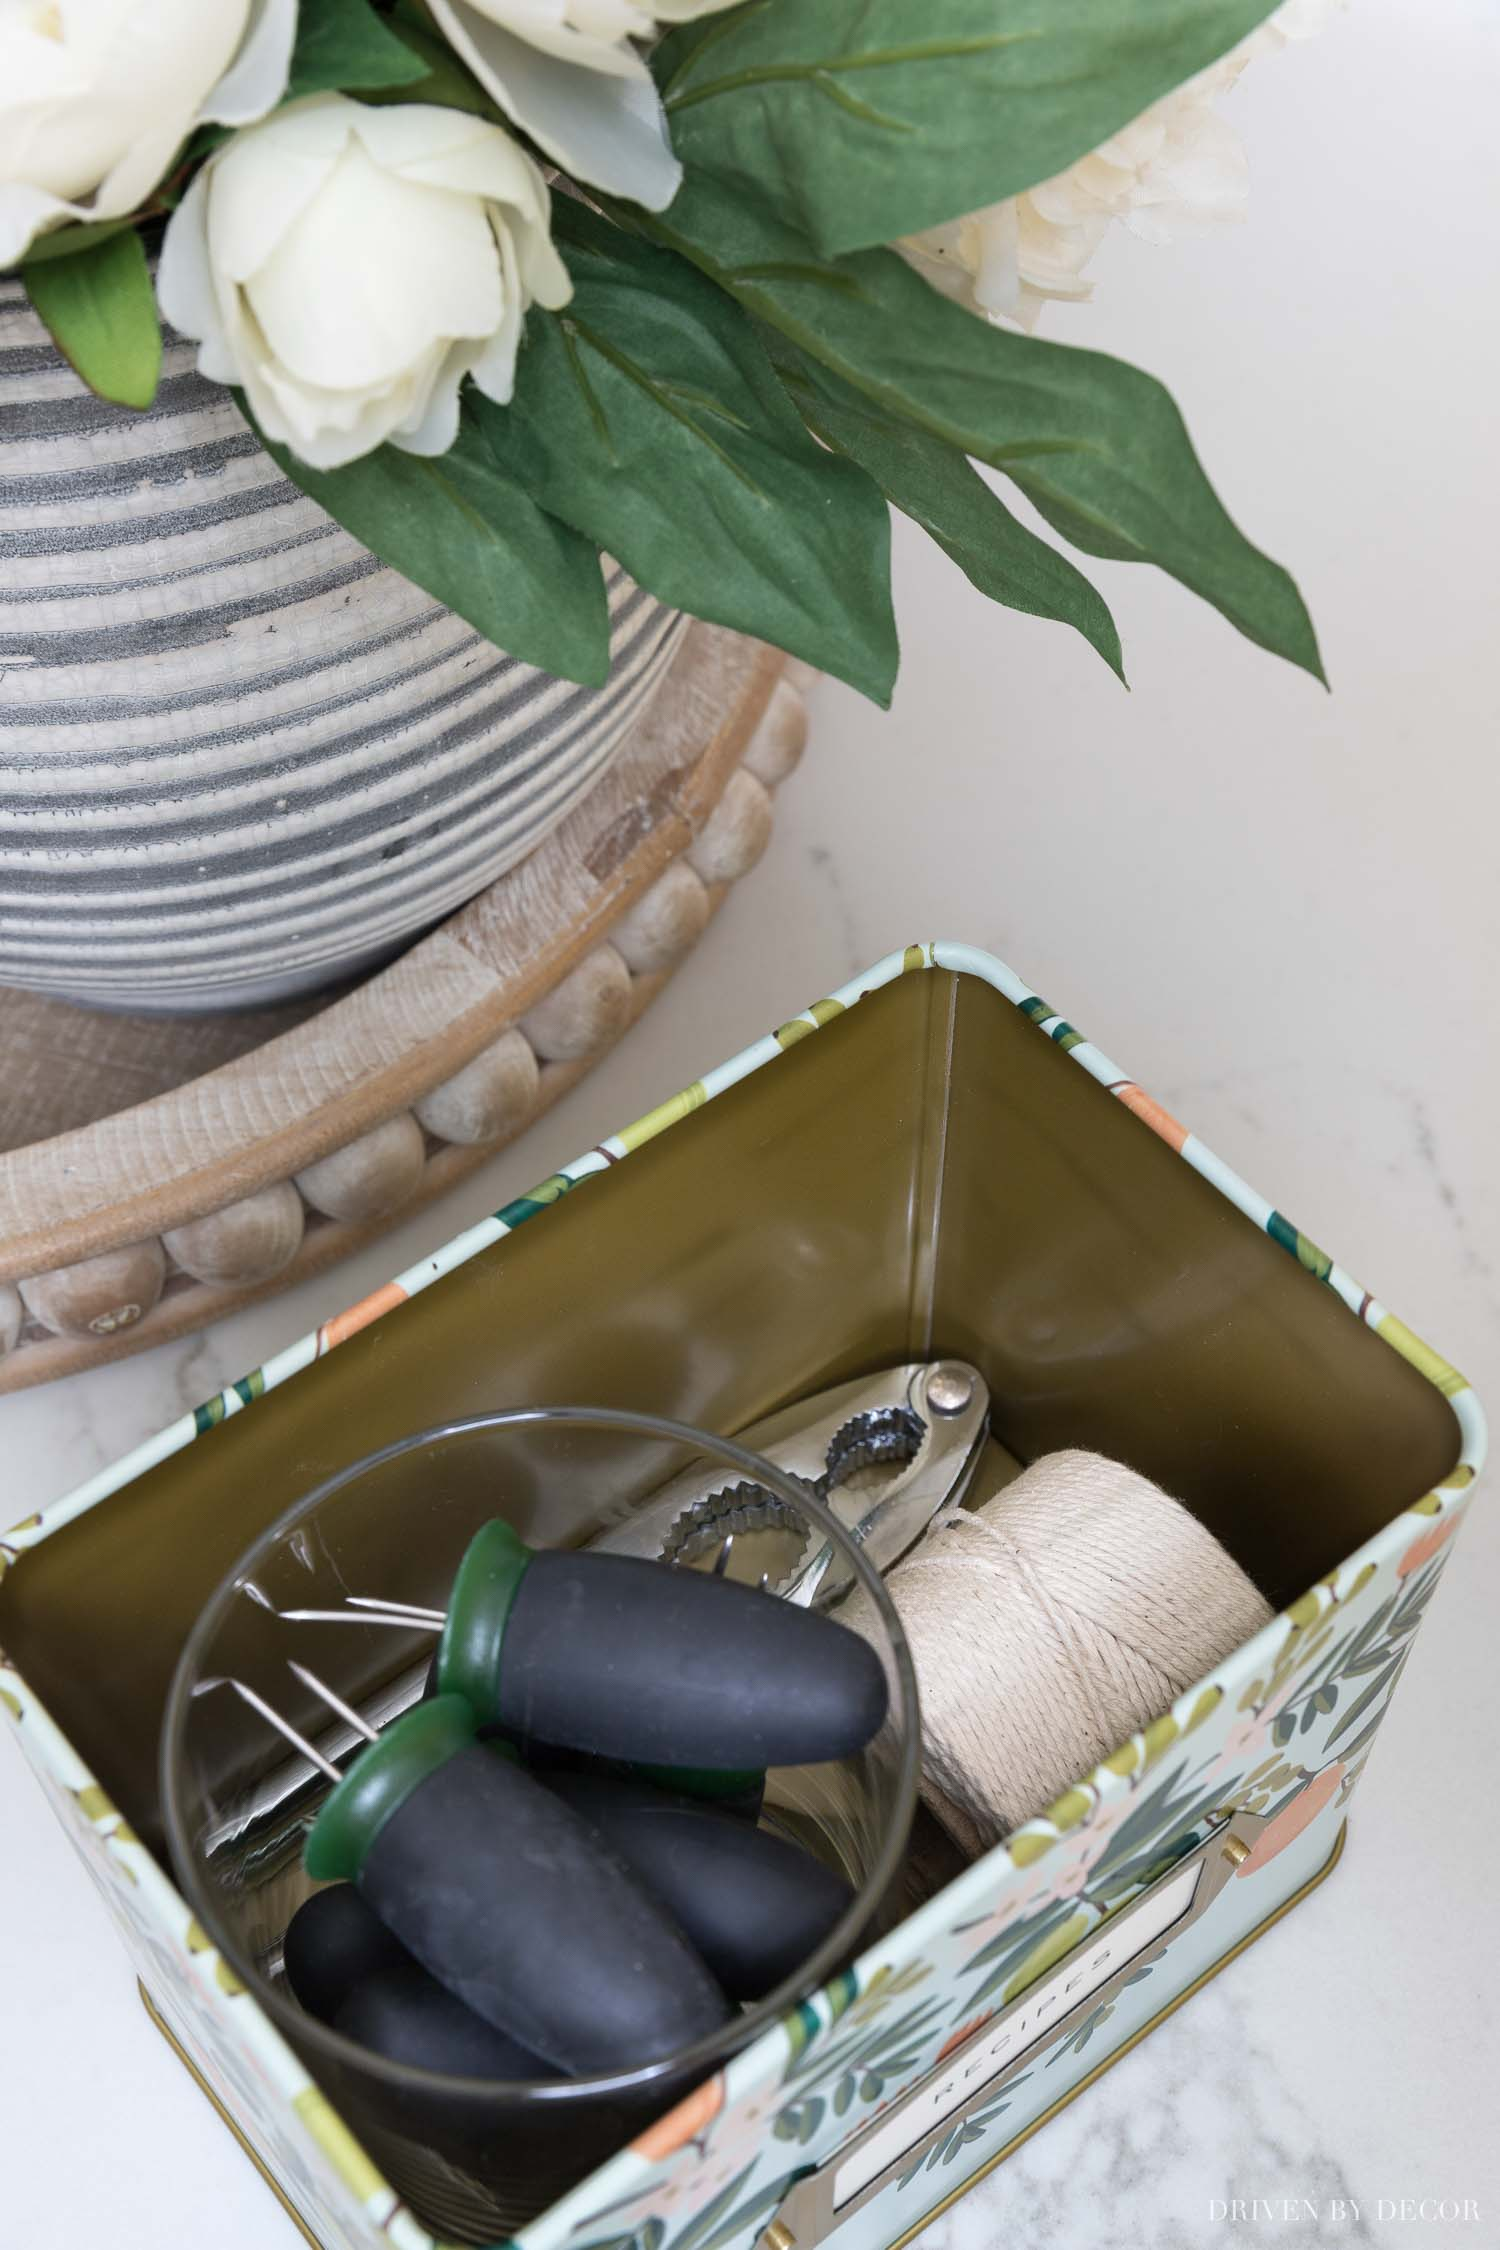 These recipe tins are perfect for hidden storage in the kitchen!